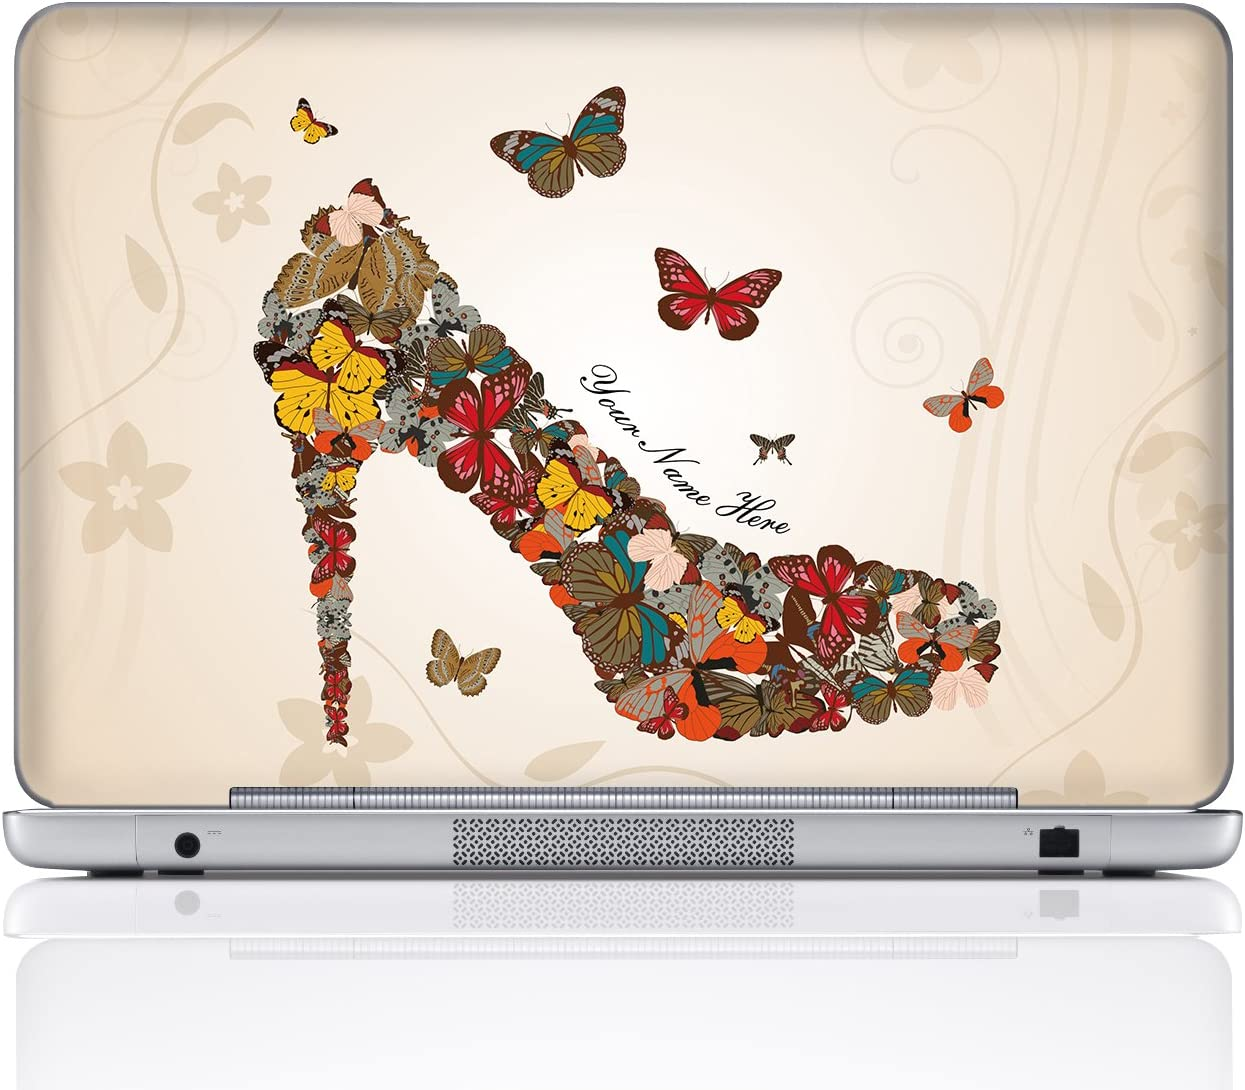 Meffort Inc Personalized Laptop Notebook Notebook Skin Sticker Cover Art Decal, Customize Your Name (15.6 Inch, Butterfly High Heel)